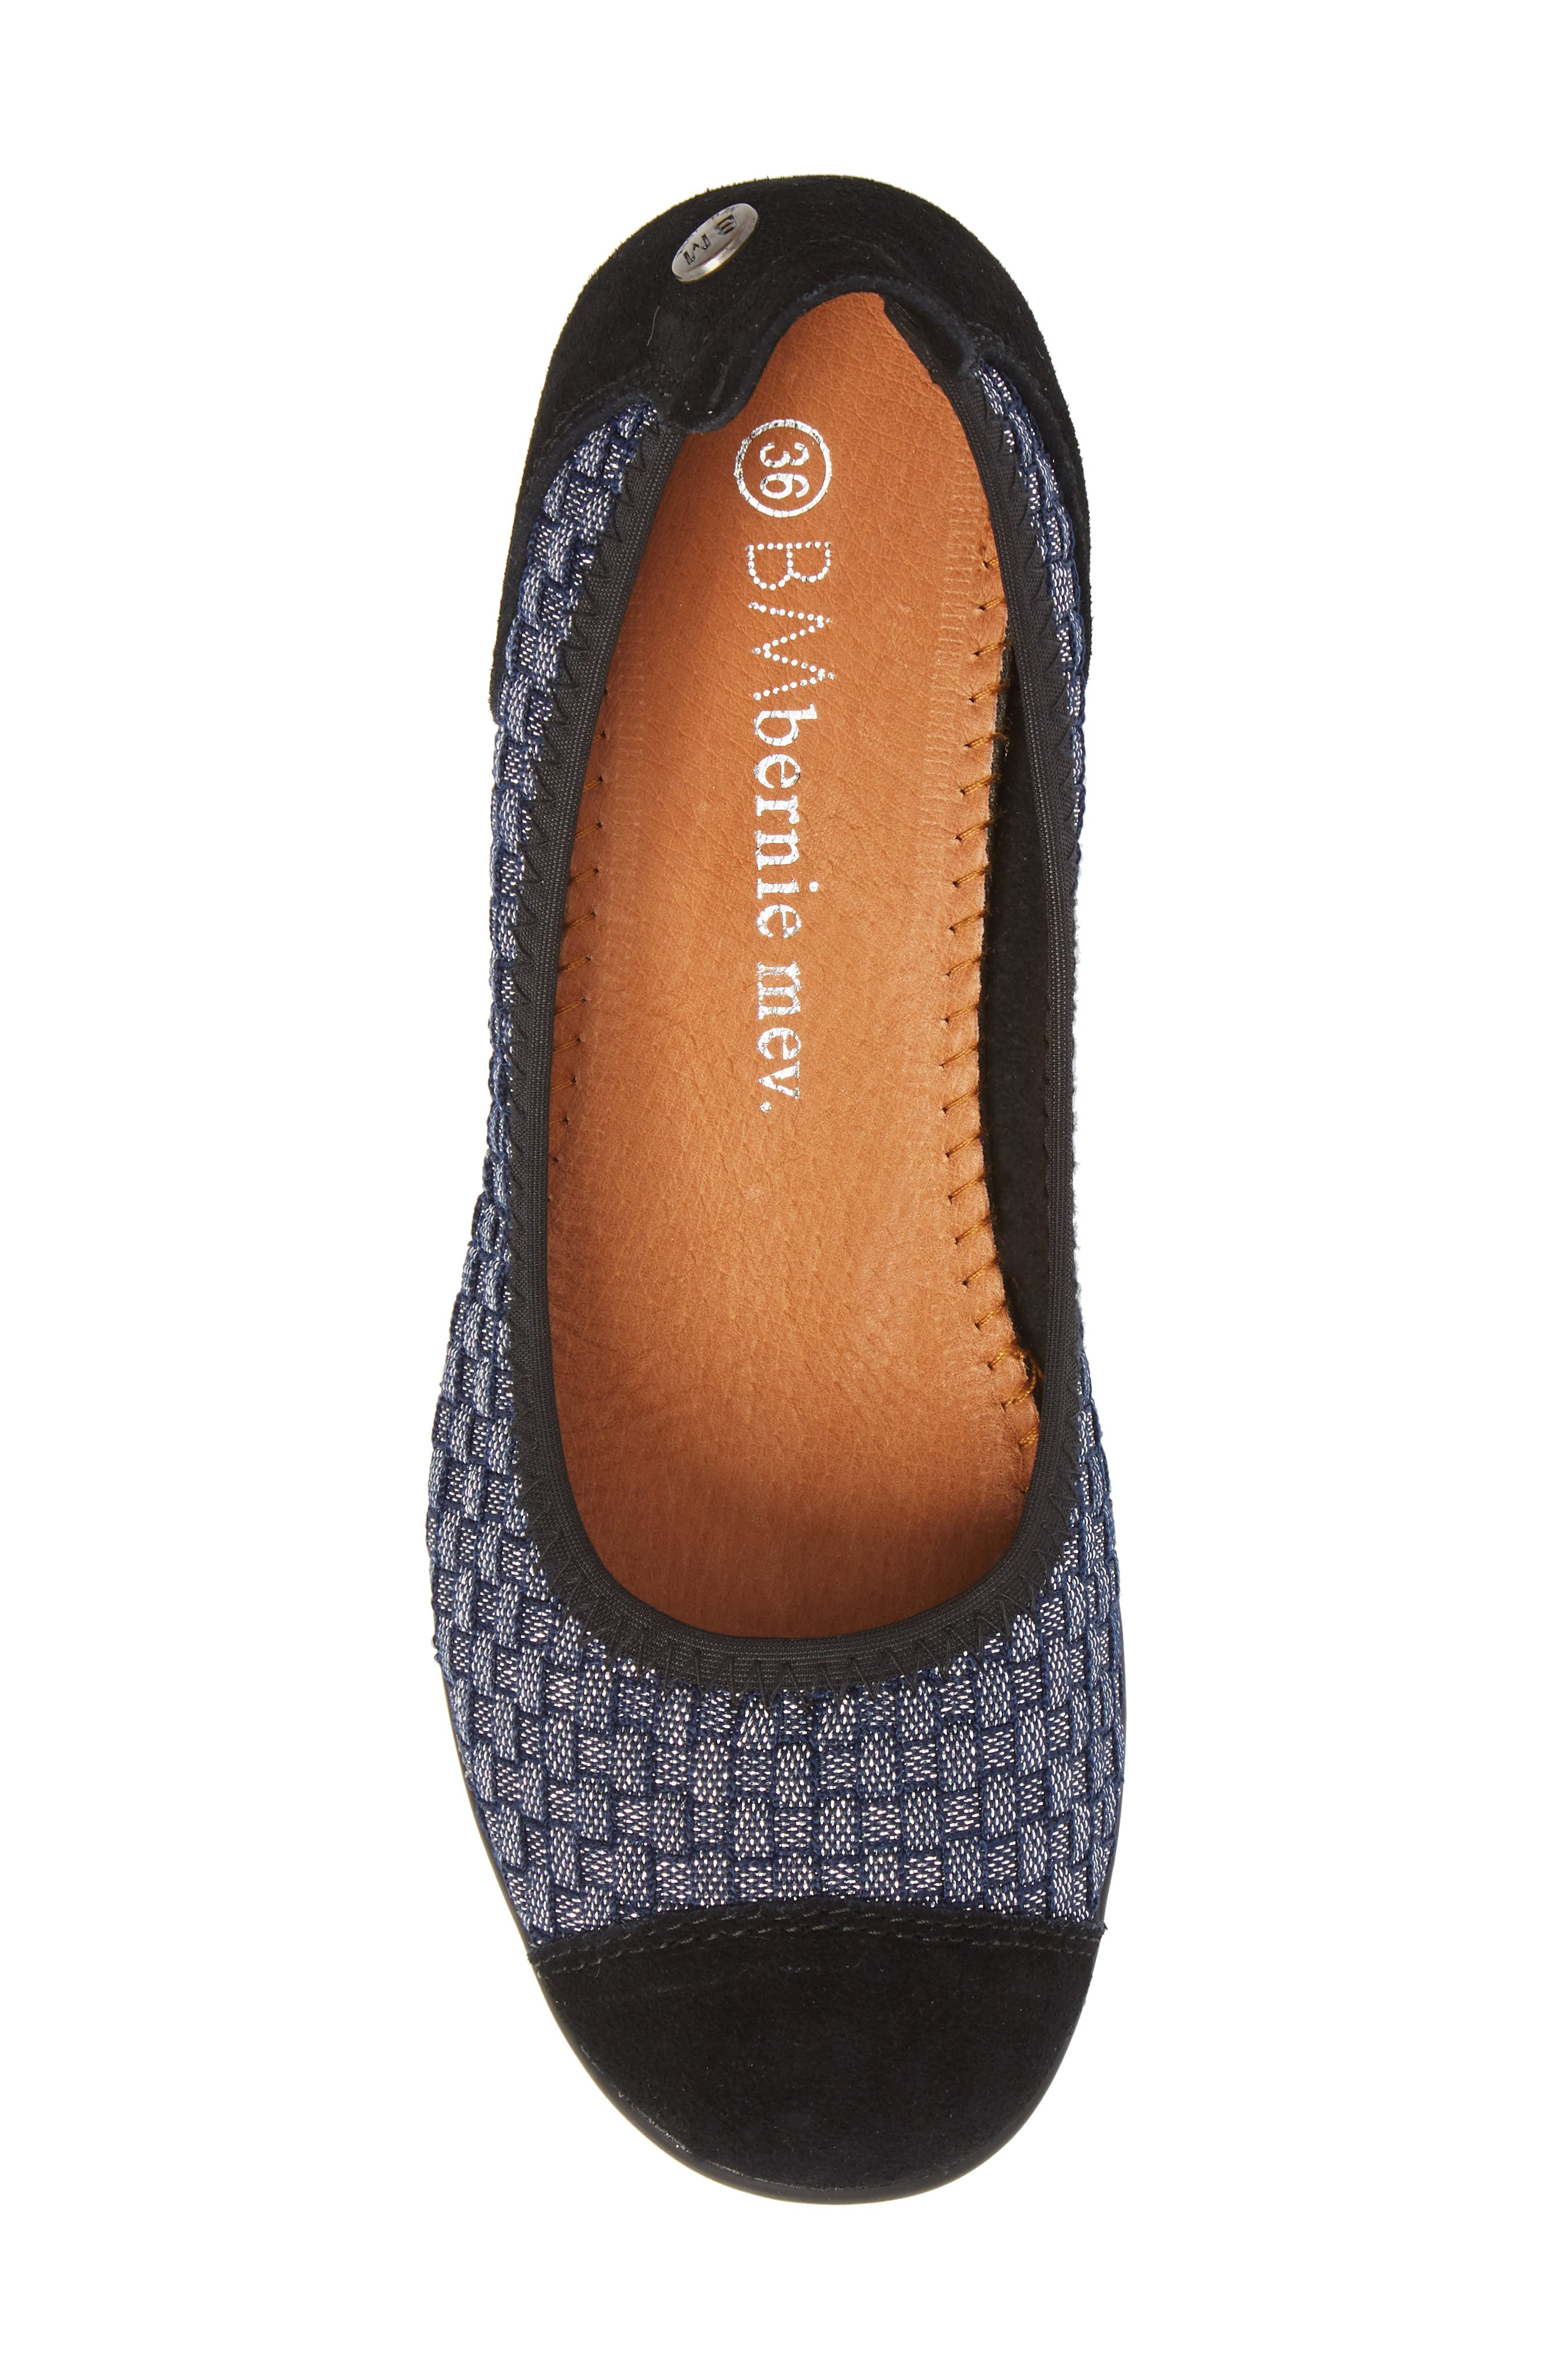 'Bella Me' Woven Flat,                             Alternate thumbnail 5, color,                             NAVY SHIMMER FABRIC